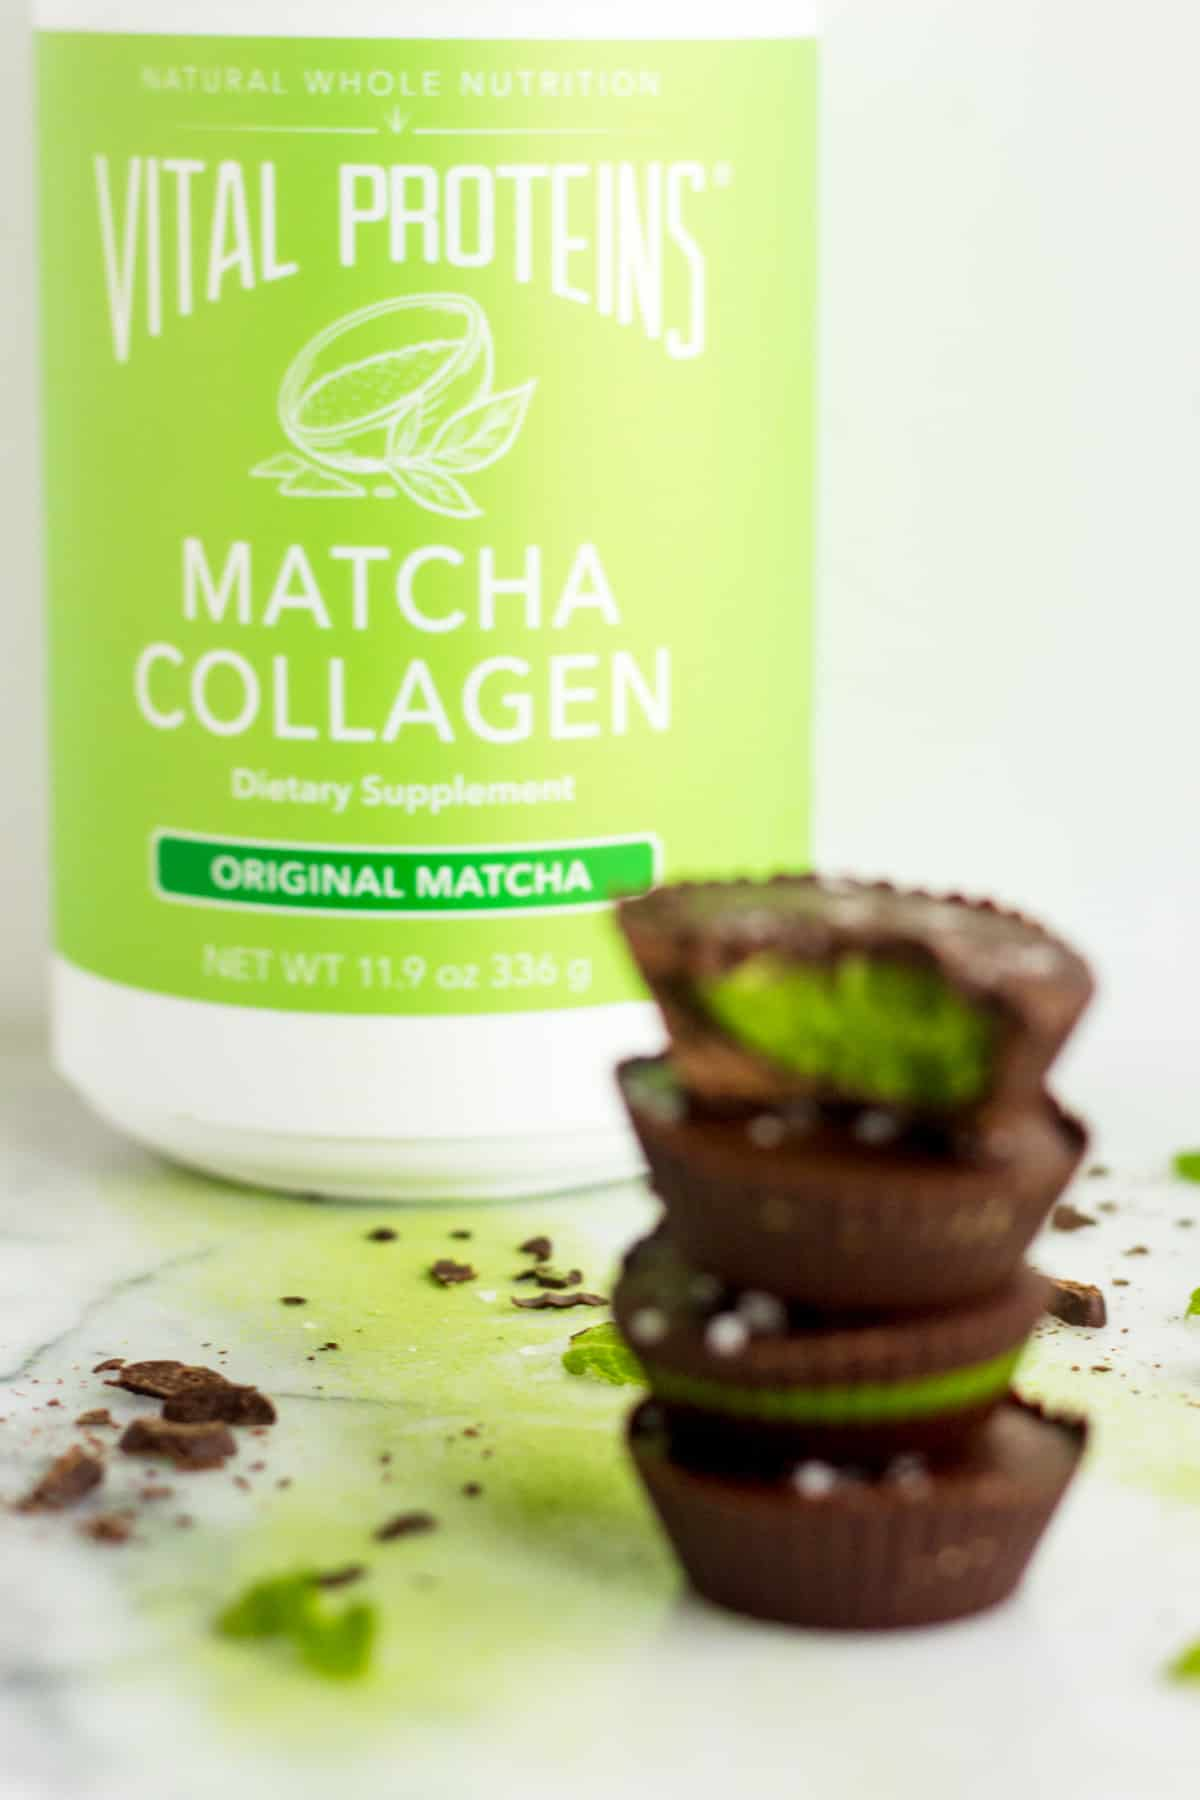 4 Collagen Mint Matcha Coconut Butter Cups stacked on drop of each other with a container of Vital Proteins Matcha Collagen in the background in focus